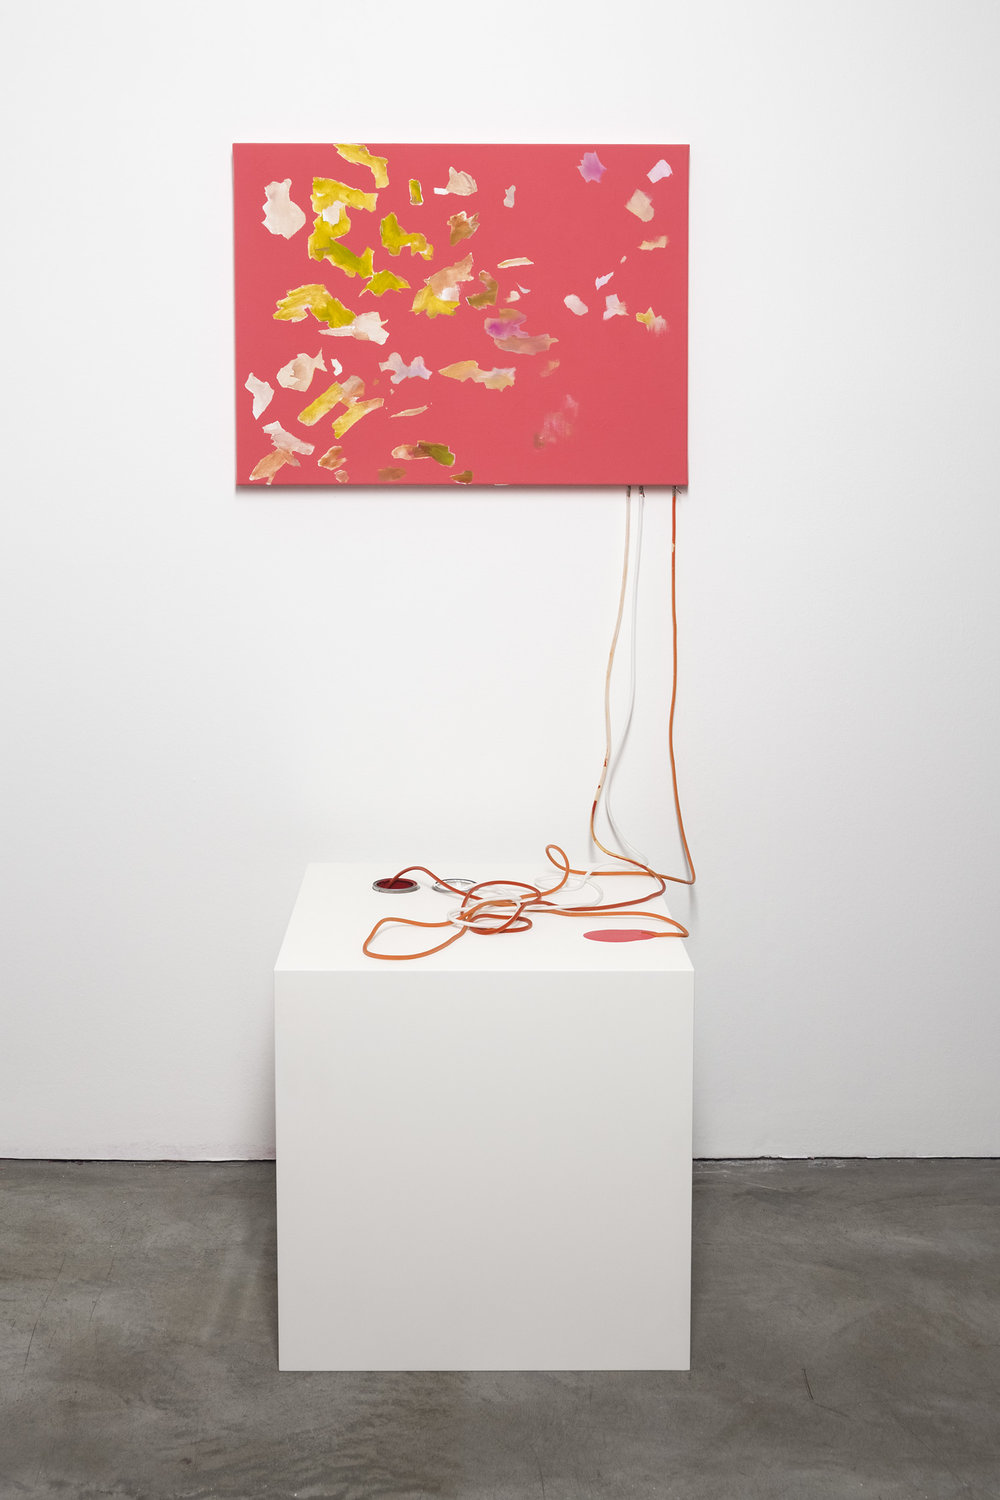 fifty / fifty (how to make a painting), 2013    Acrylic and oil, shell, flower, lace doily, tube, can,    pedestal    dimensions variable